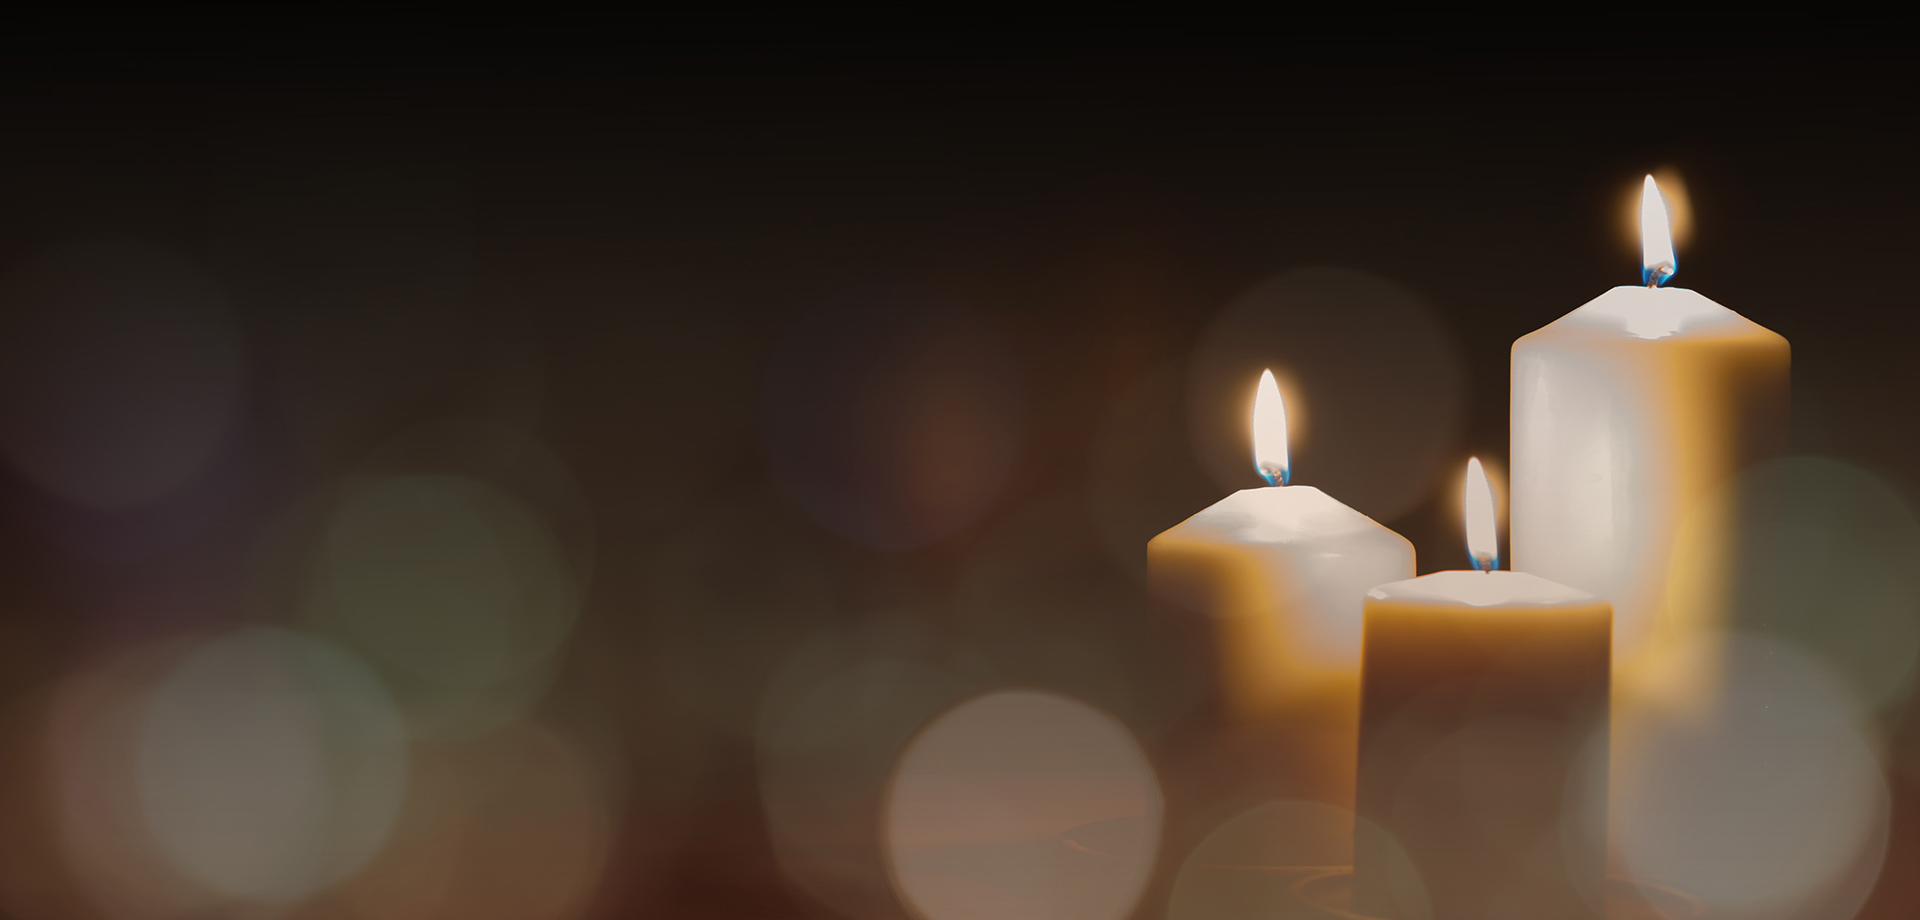 abstract image of funeral candles